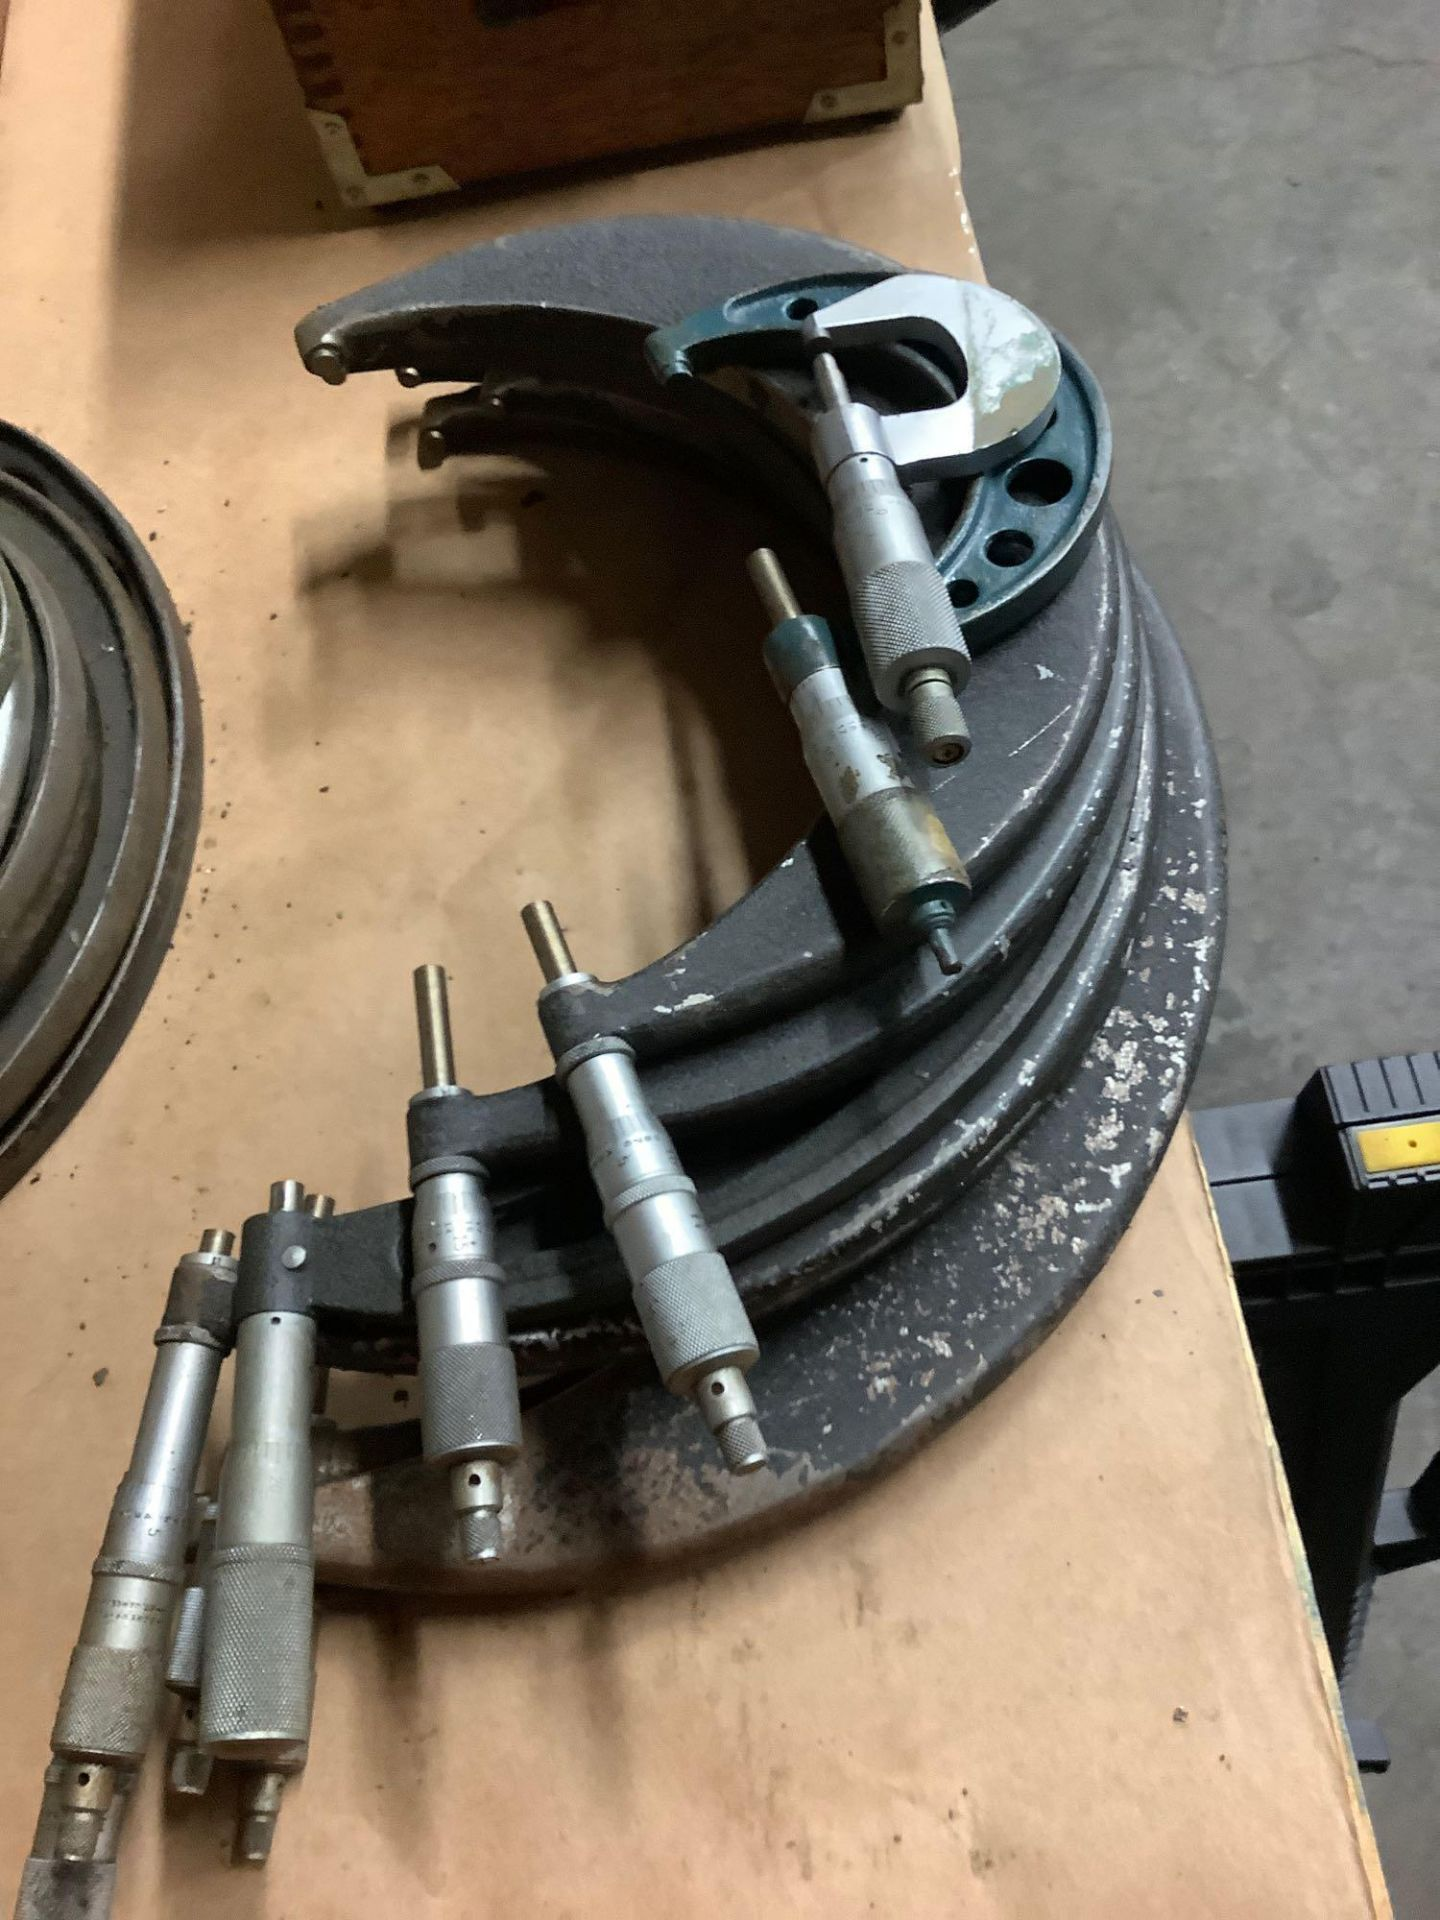 Lot of OD Micrometers, Assorted Brands and Sizes - Image 3 of 3